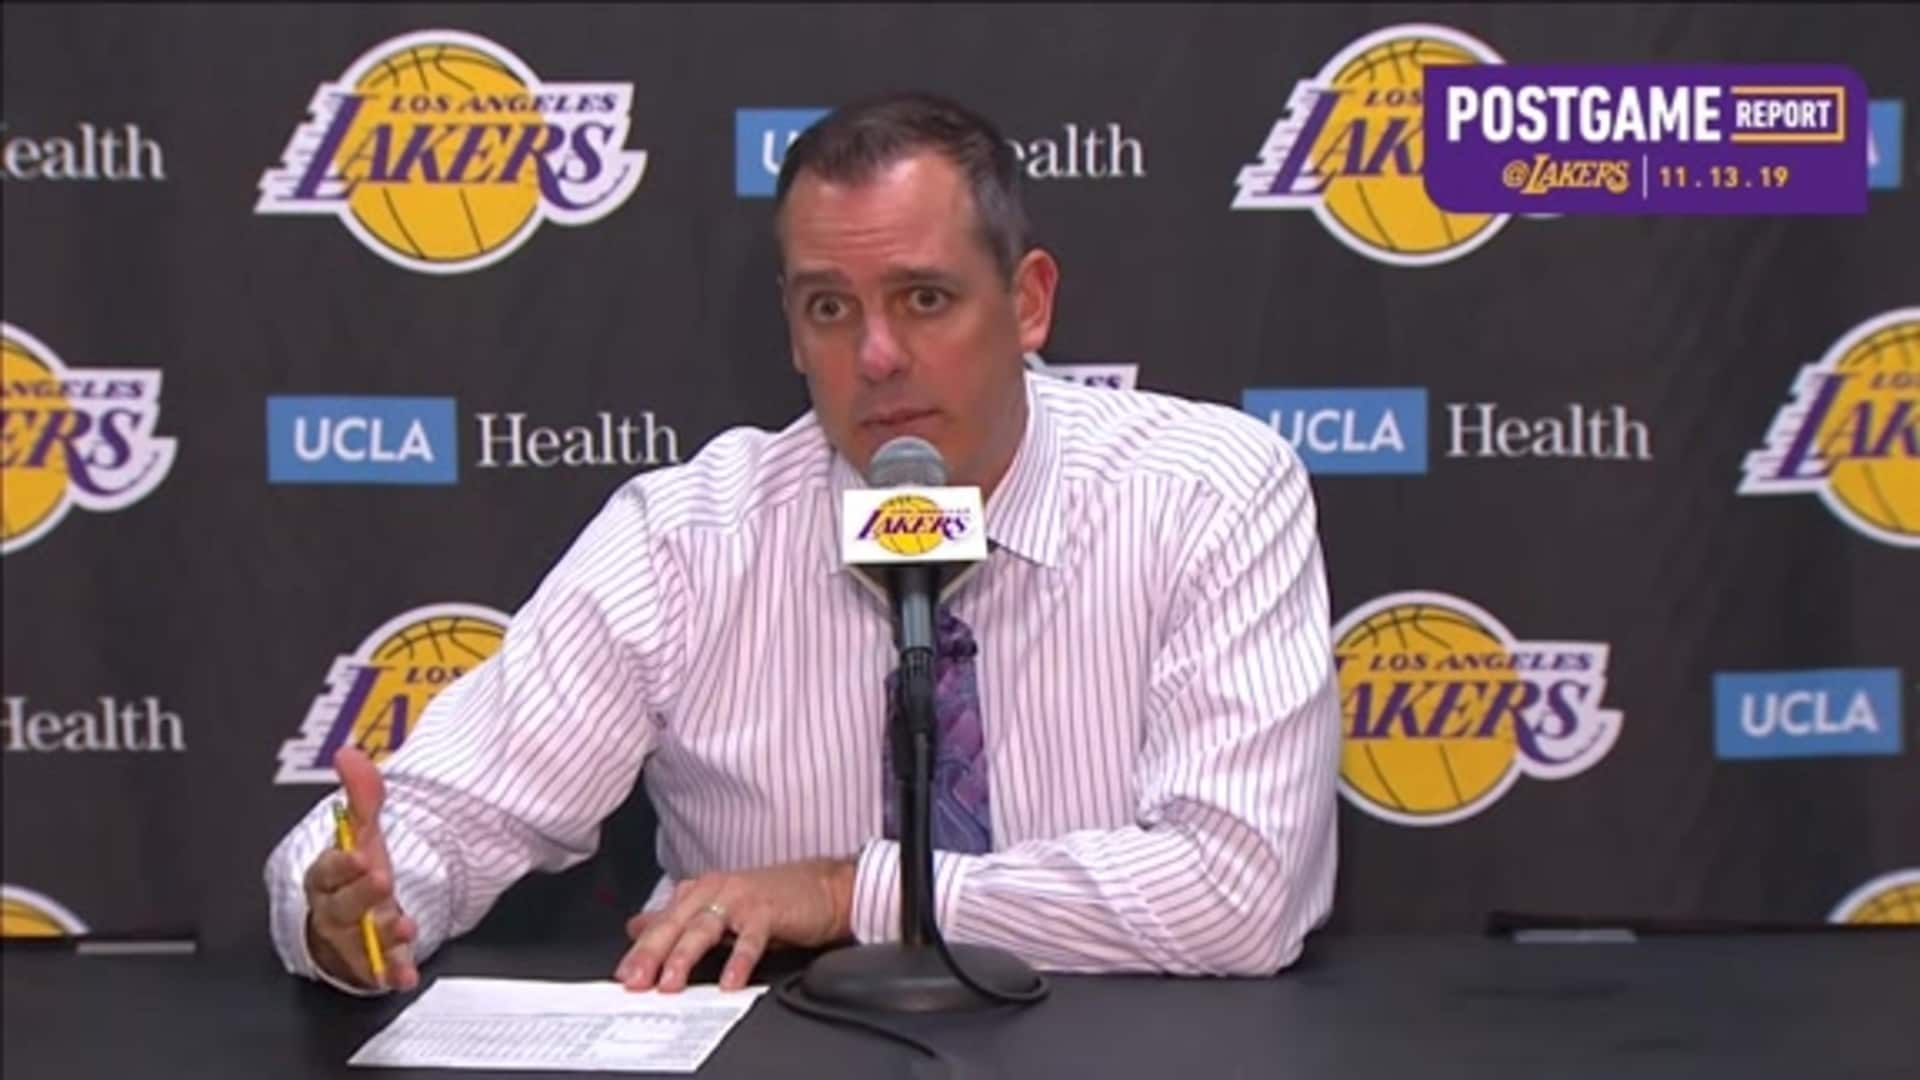 Lakers Postgame: Frank Vogel (11/13/19)